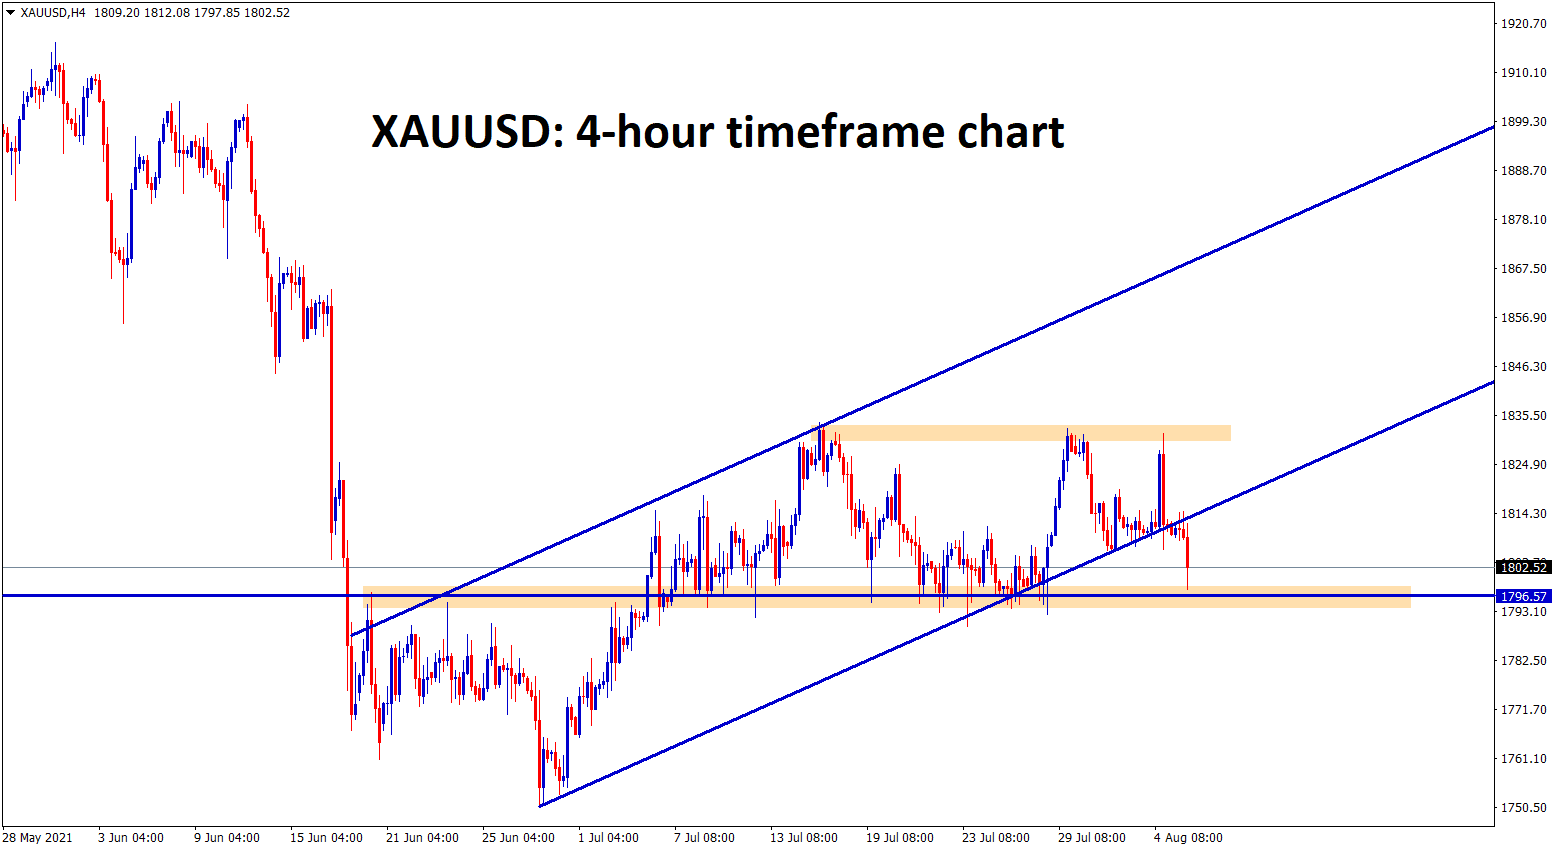 Gold price hits the support zone again breaking the higher low of uptrend line